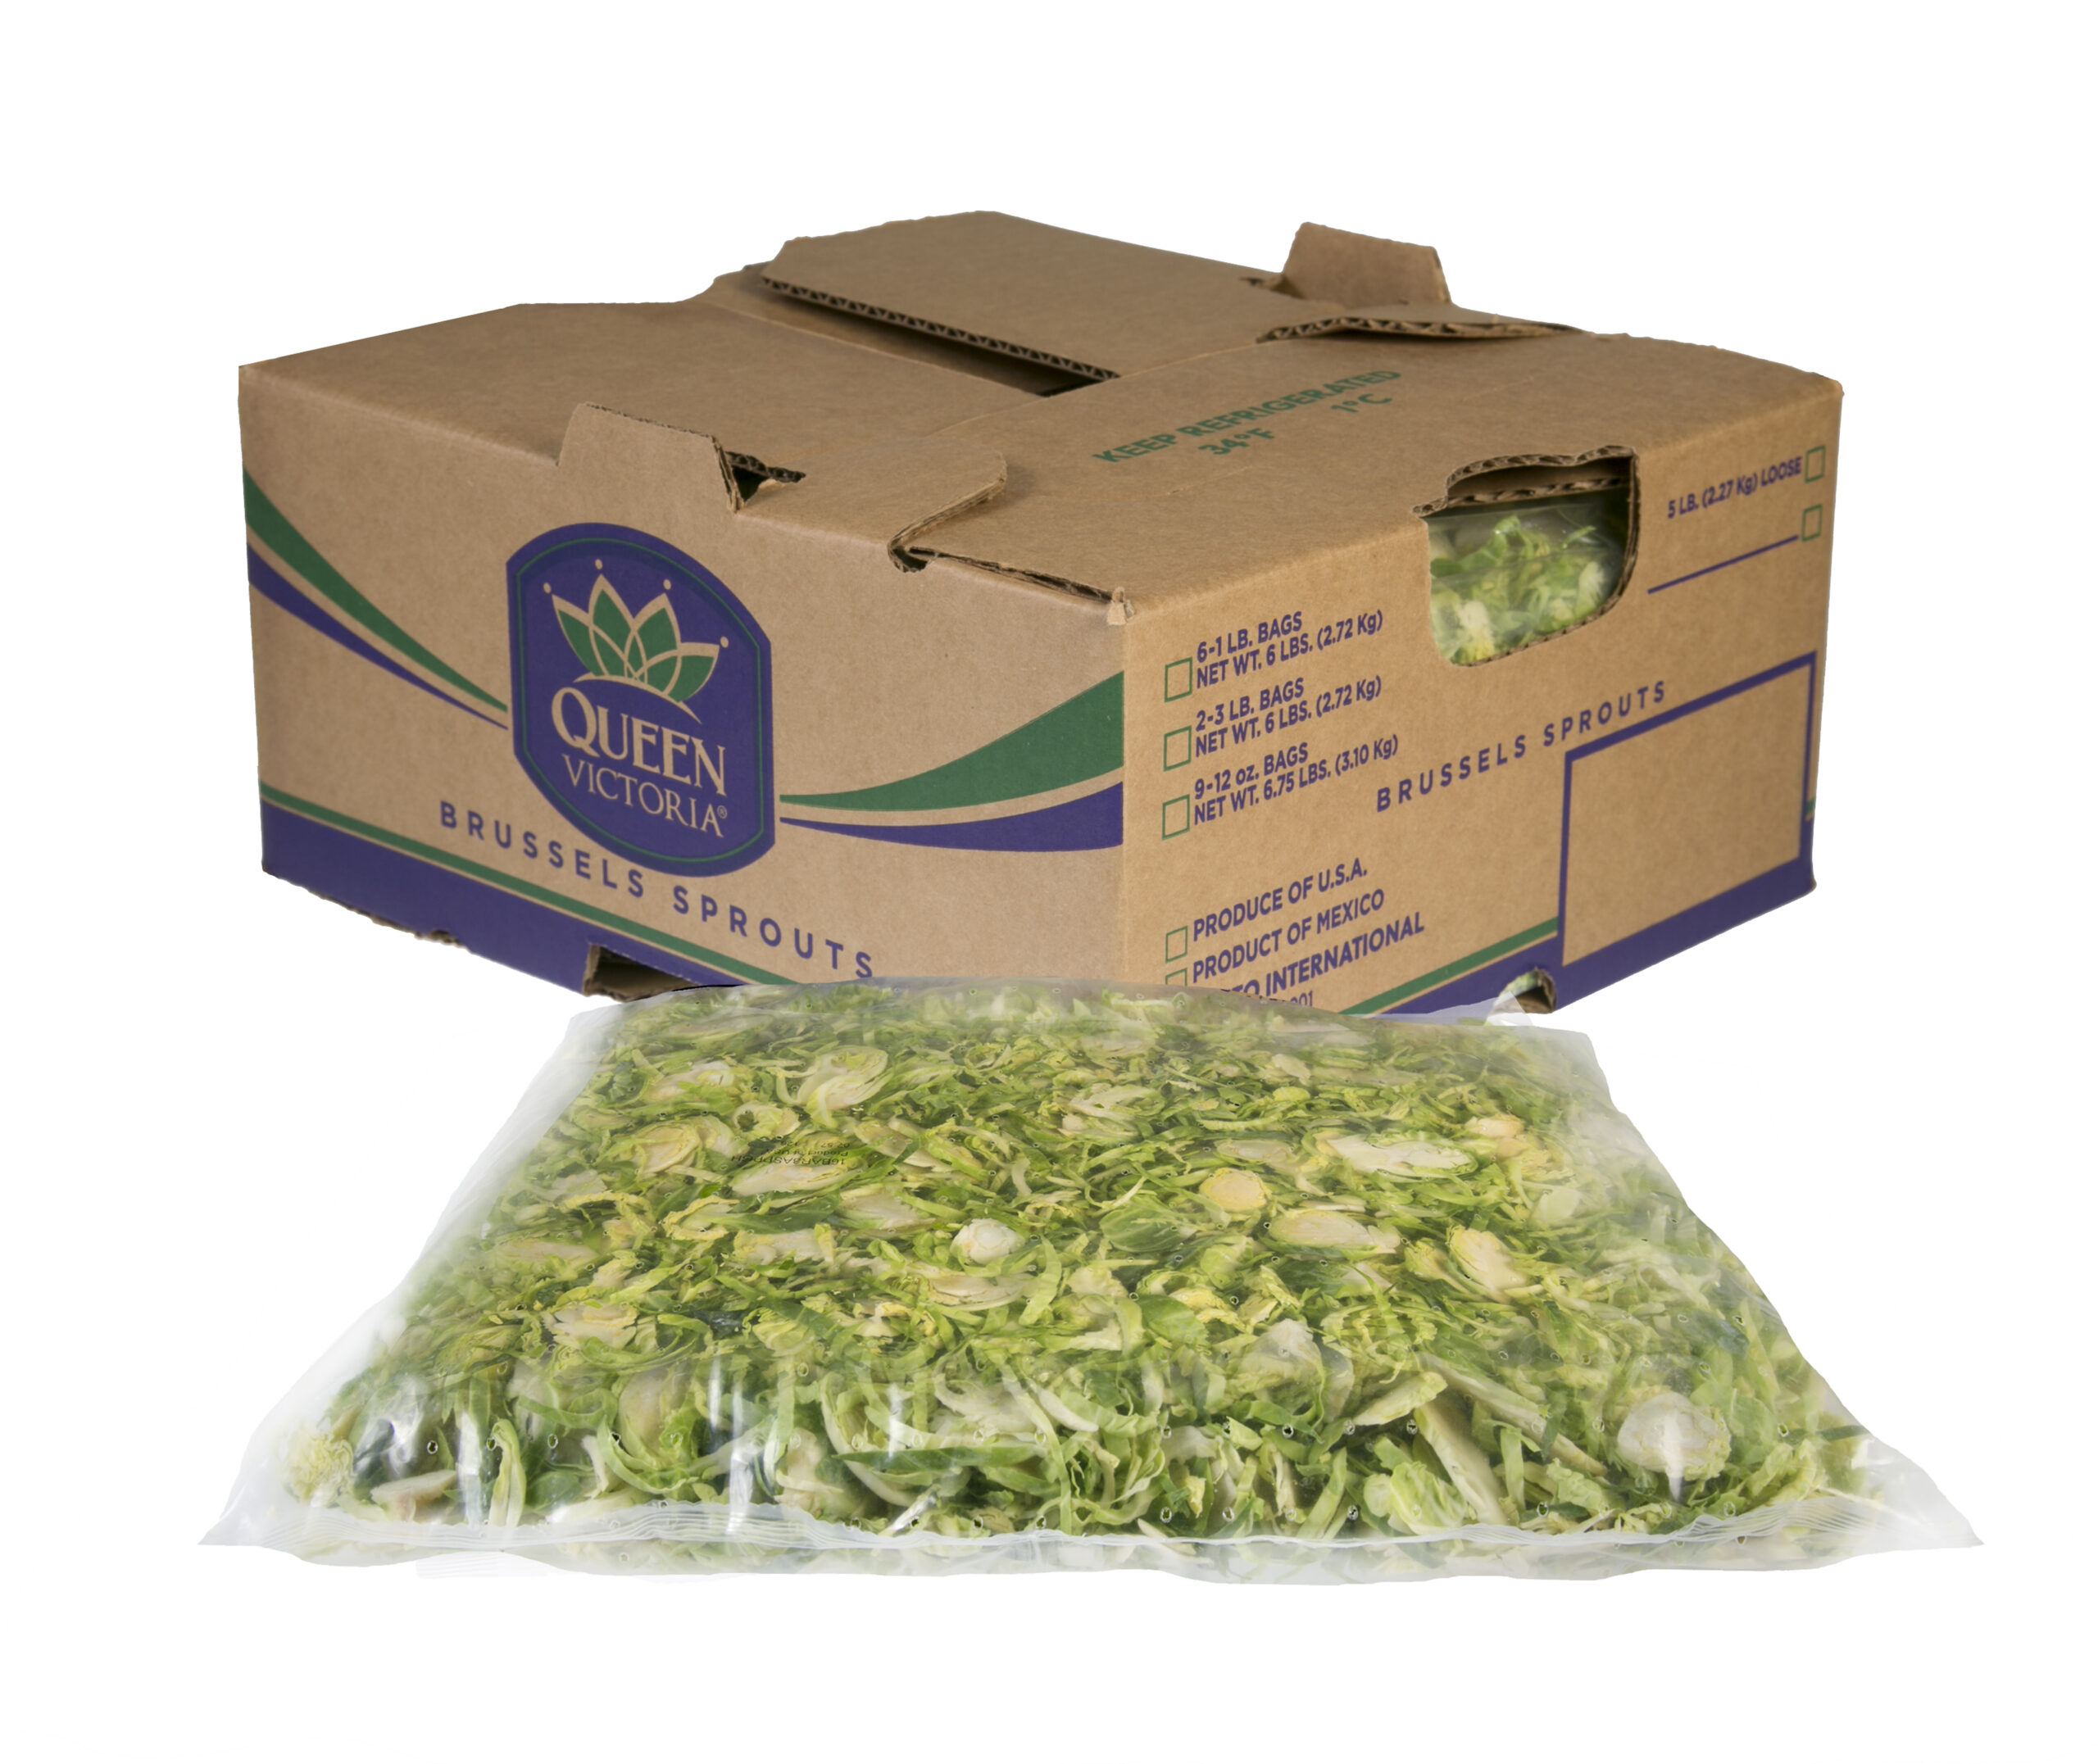 Foodservice Brussels Sprouts Shreds Bag and carton